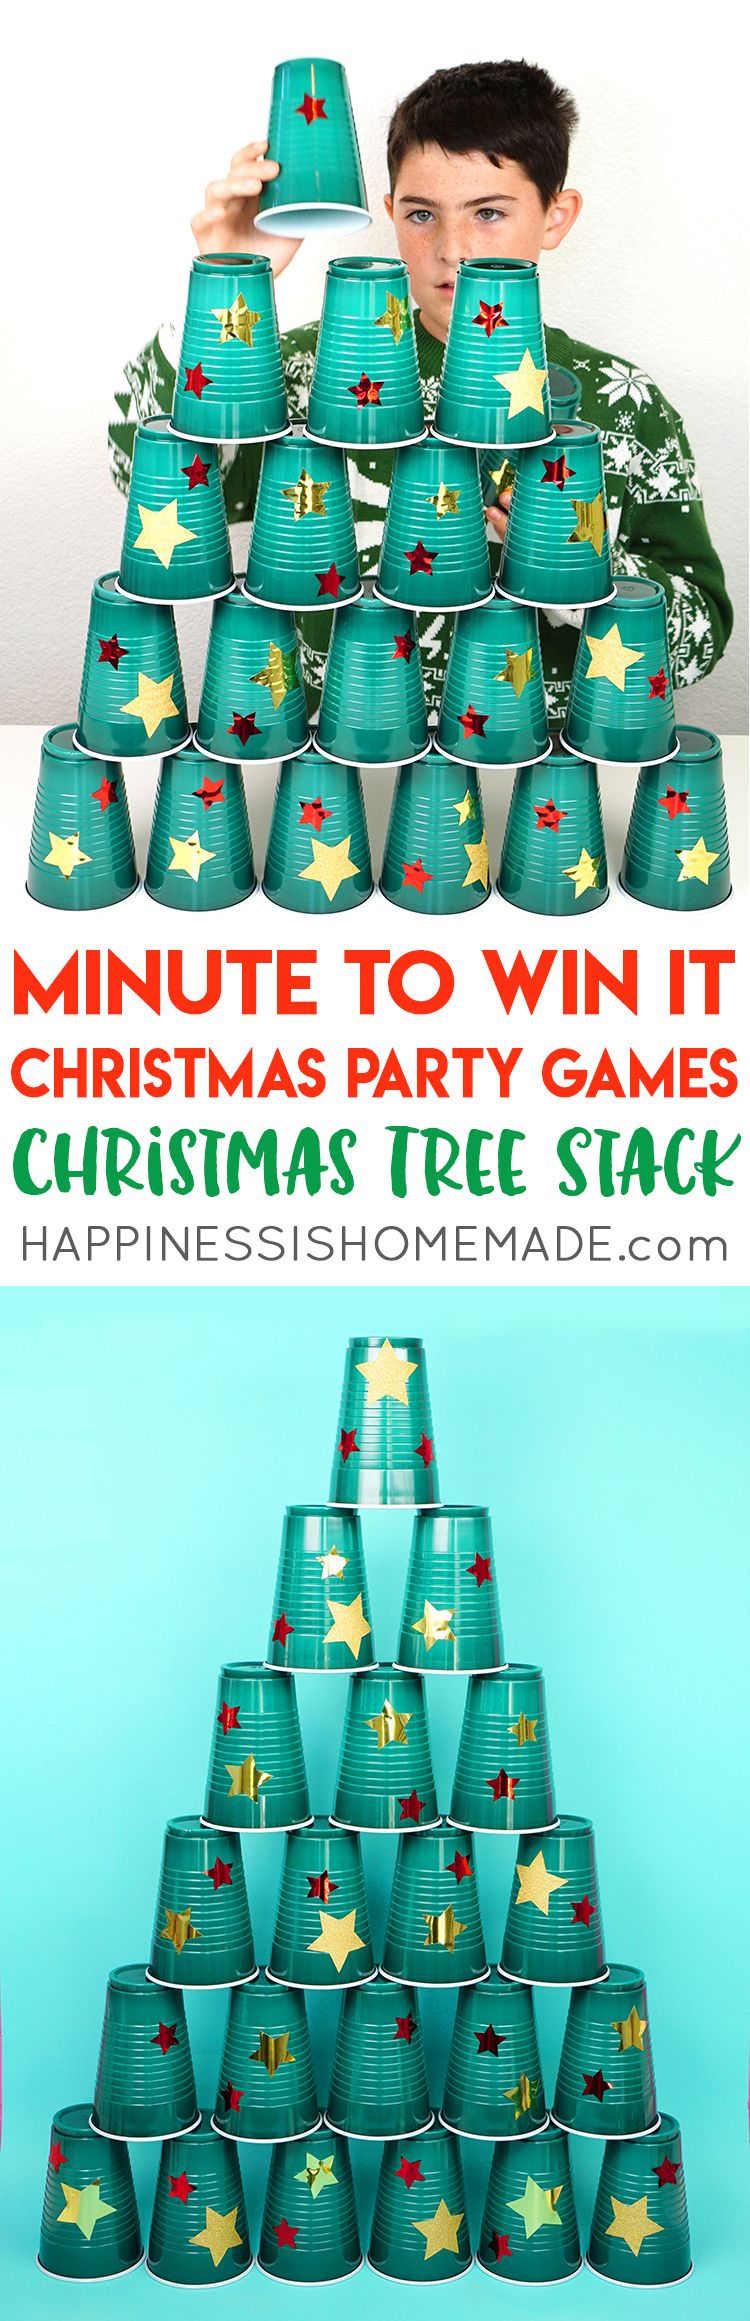 Christmas Minute to Win It Games Host the best Christmas